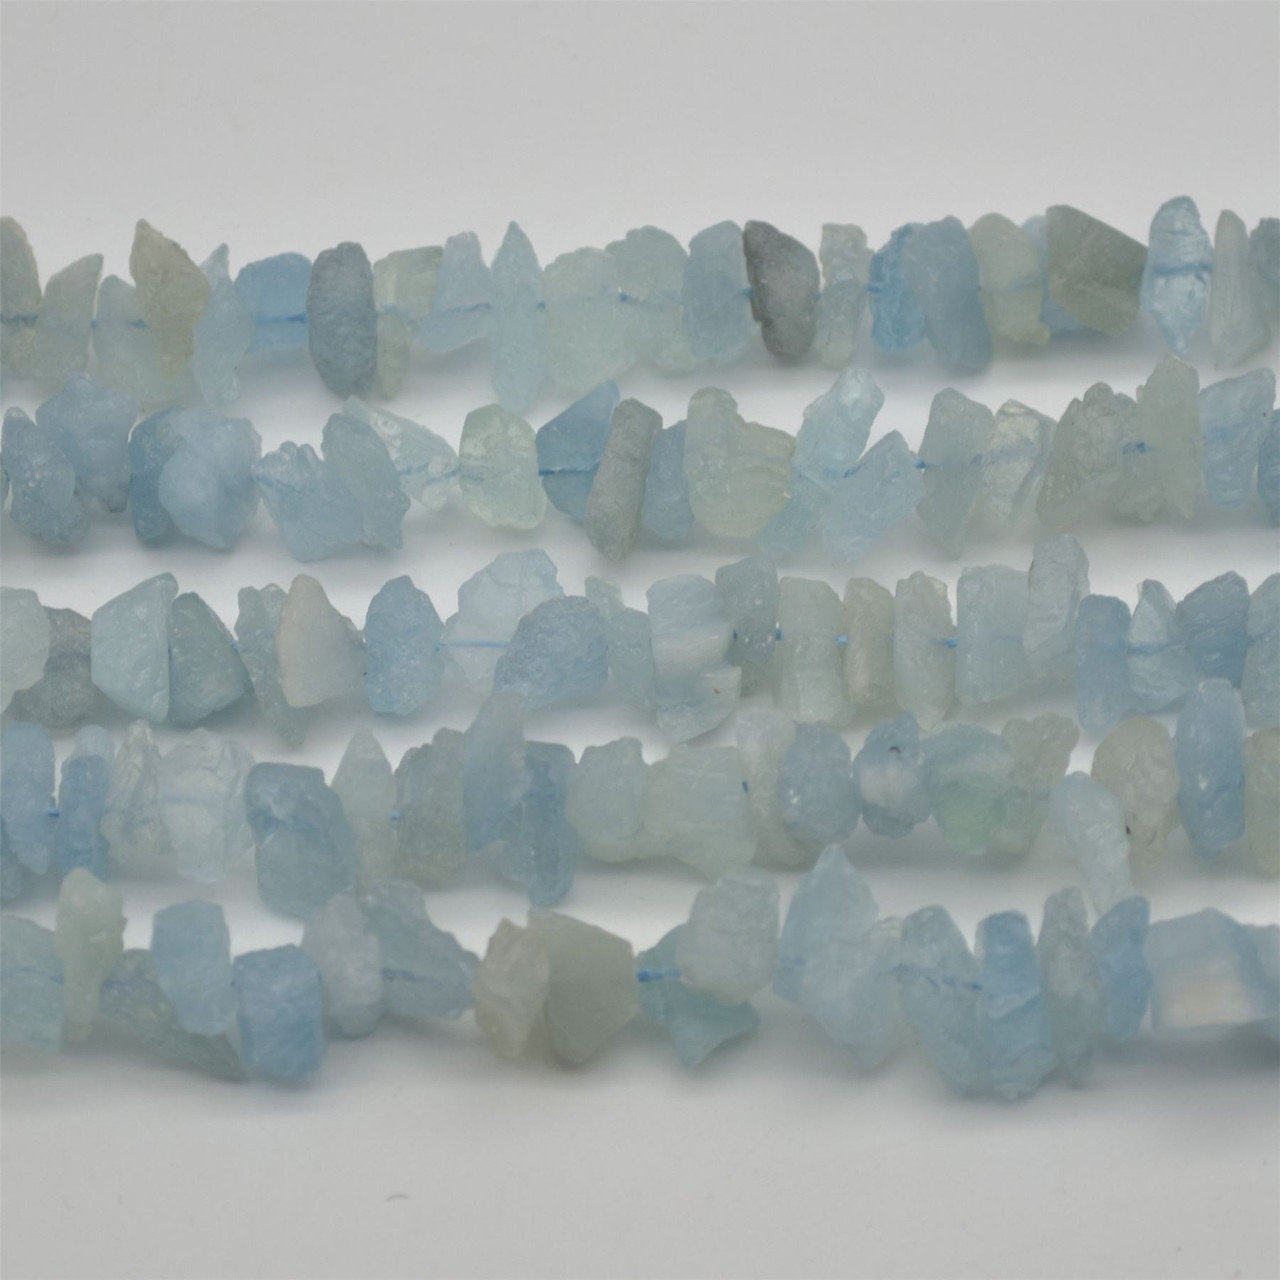 Semi Precious Stone Bead About 80 Frosted Mixed Natural Gemstone Beads Frost Gems Chip Strand 15.5 Inch Strand 12-22mm Long Chip Beads